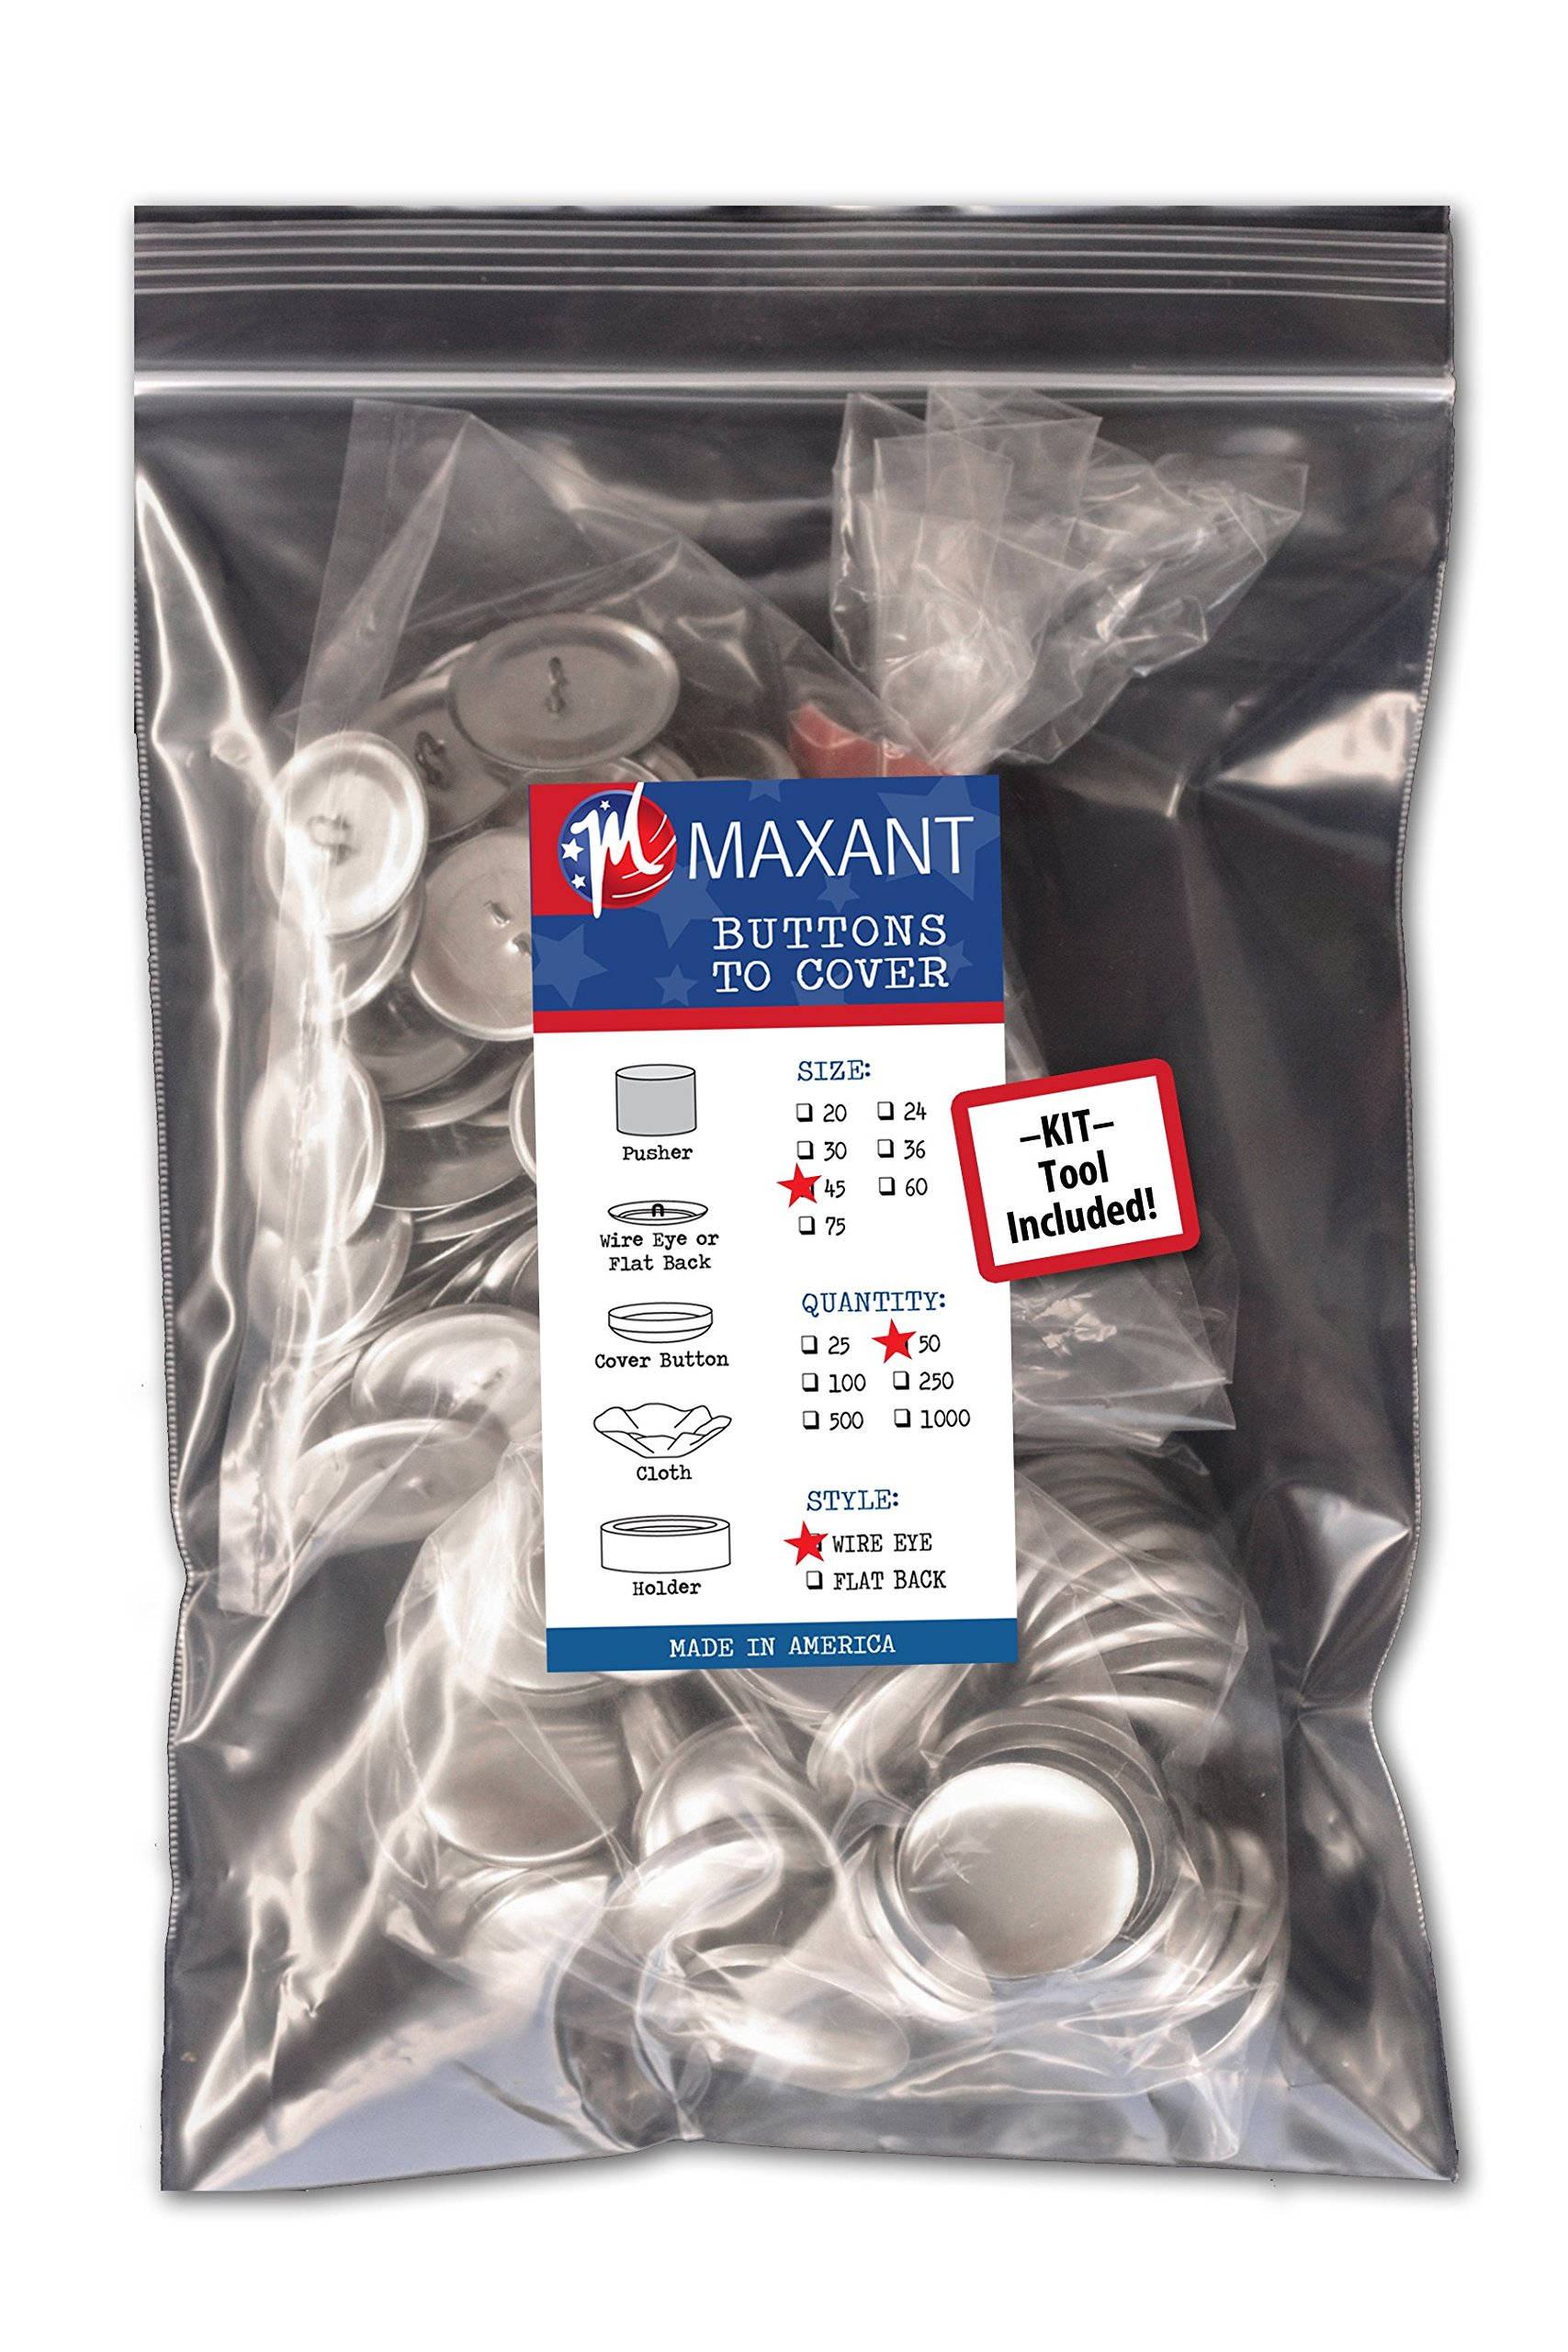 50 Buttons to Cover - Made in USA - Self Cover Buttons with wire eyes - size 45 with Tool by M MAXANT